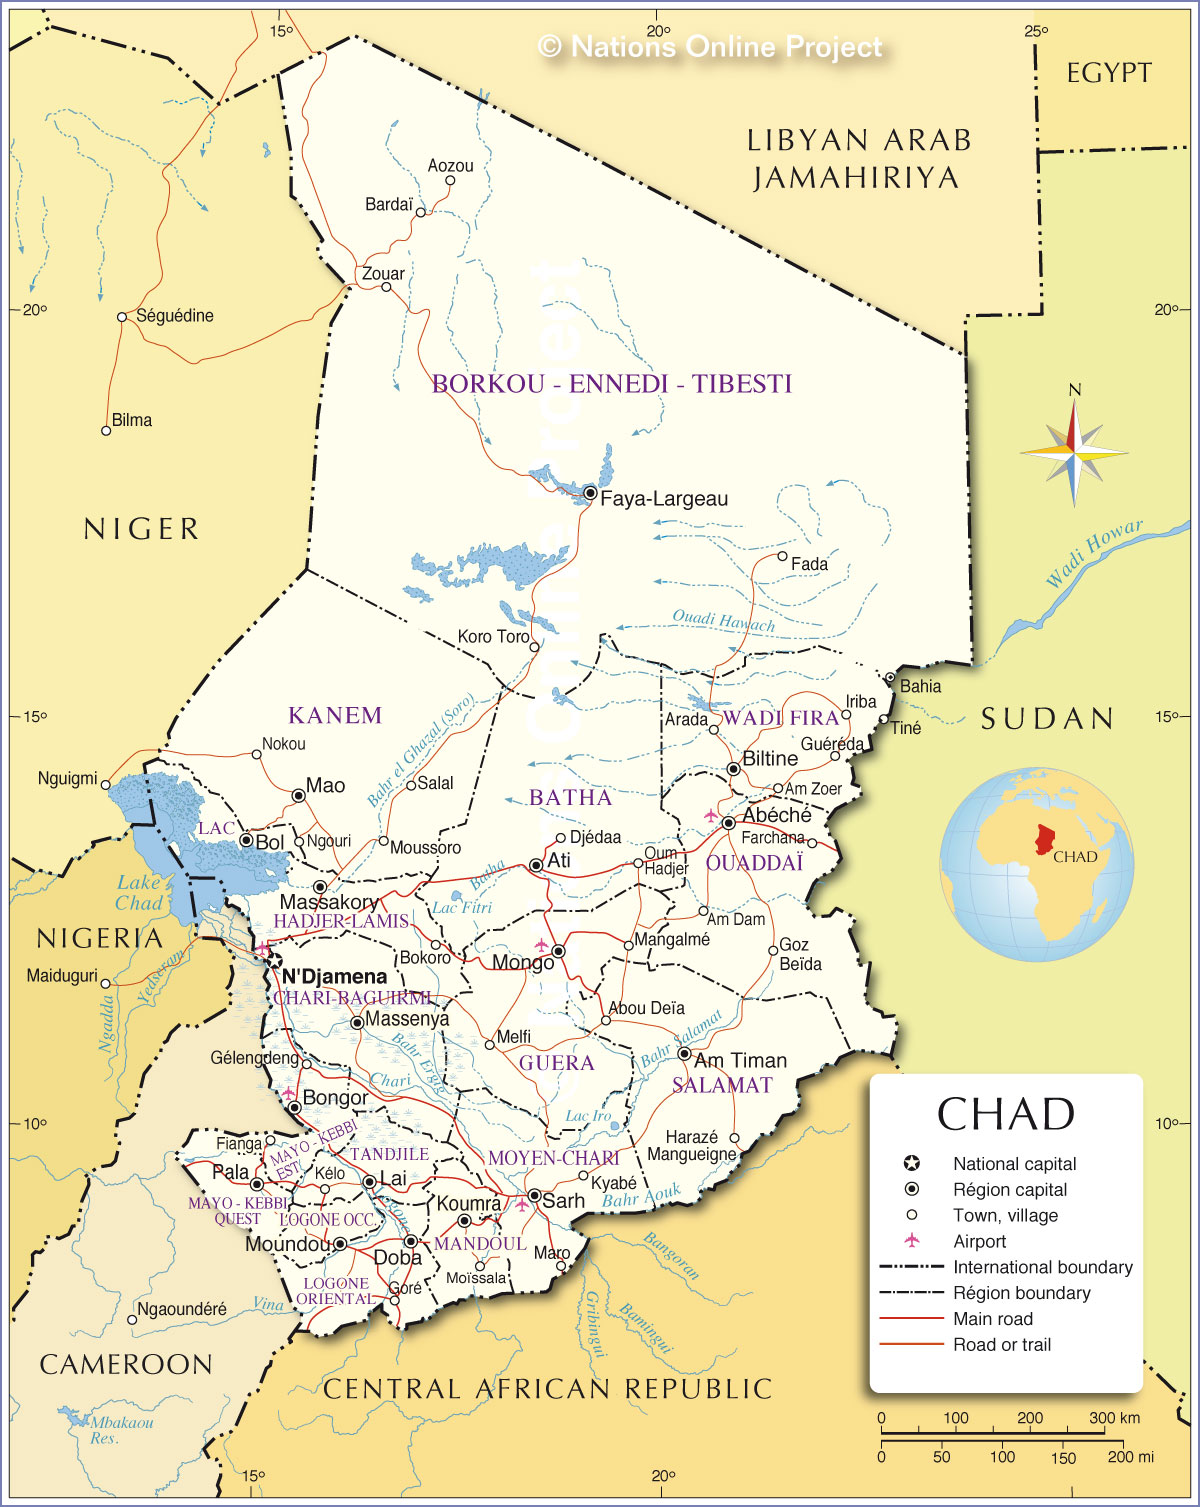 Political Map of Chad Nations Online Project